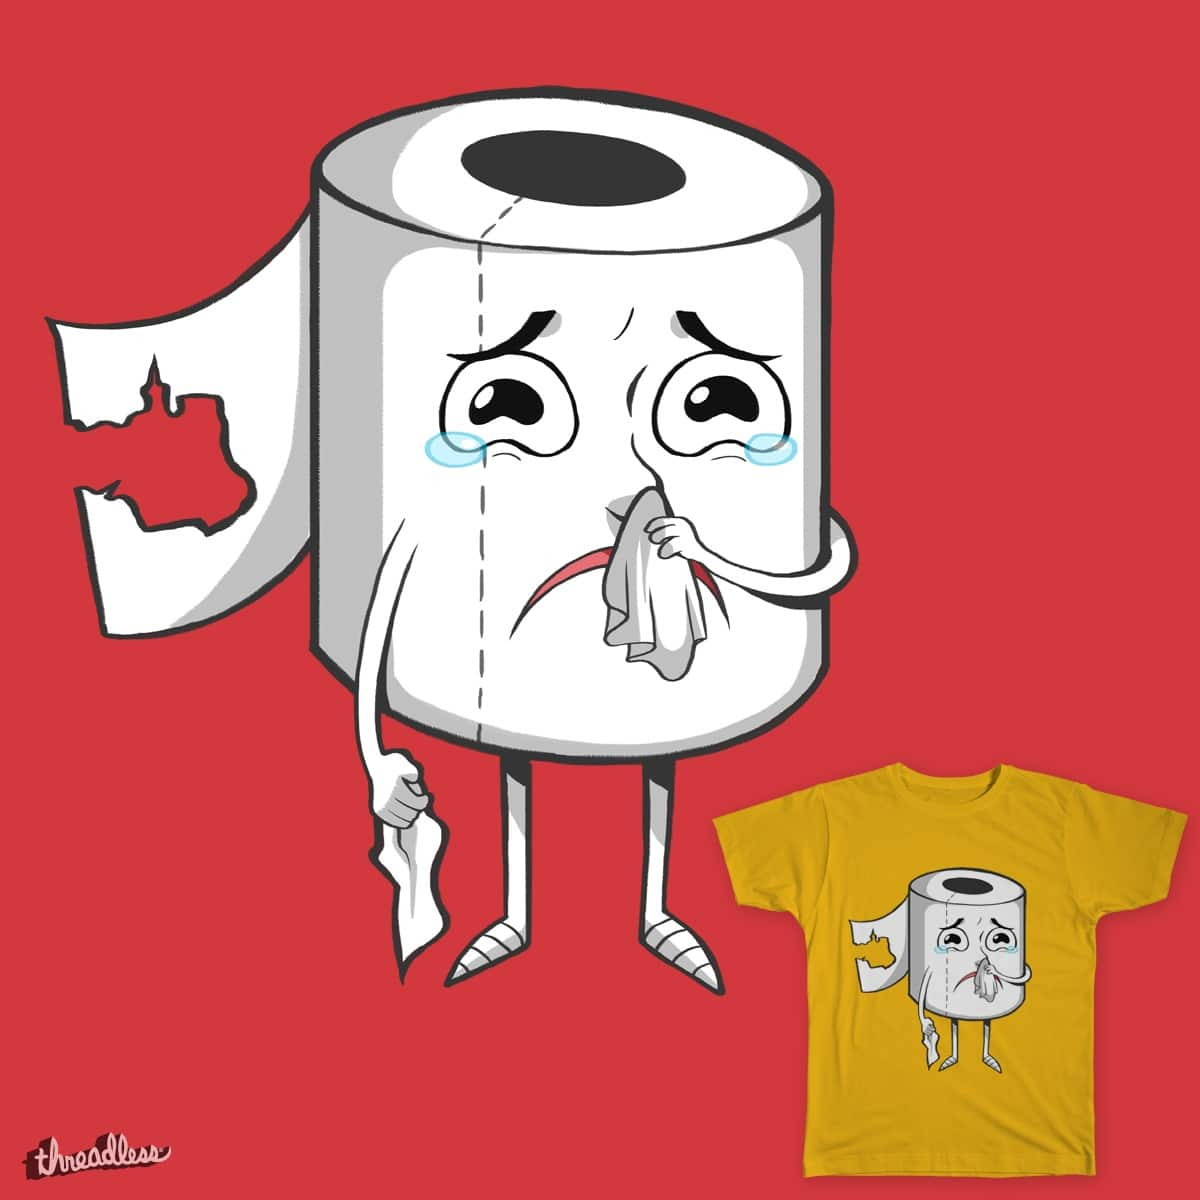 SELF-HELP  by arehime on Threadless